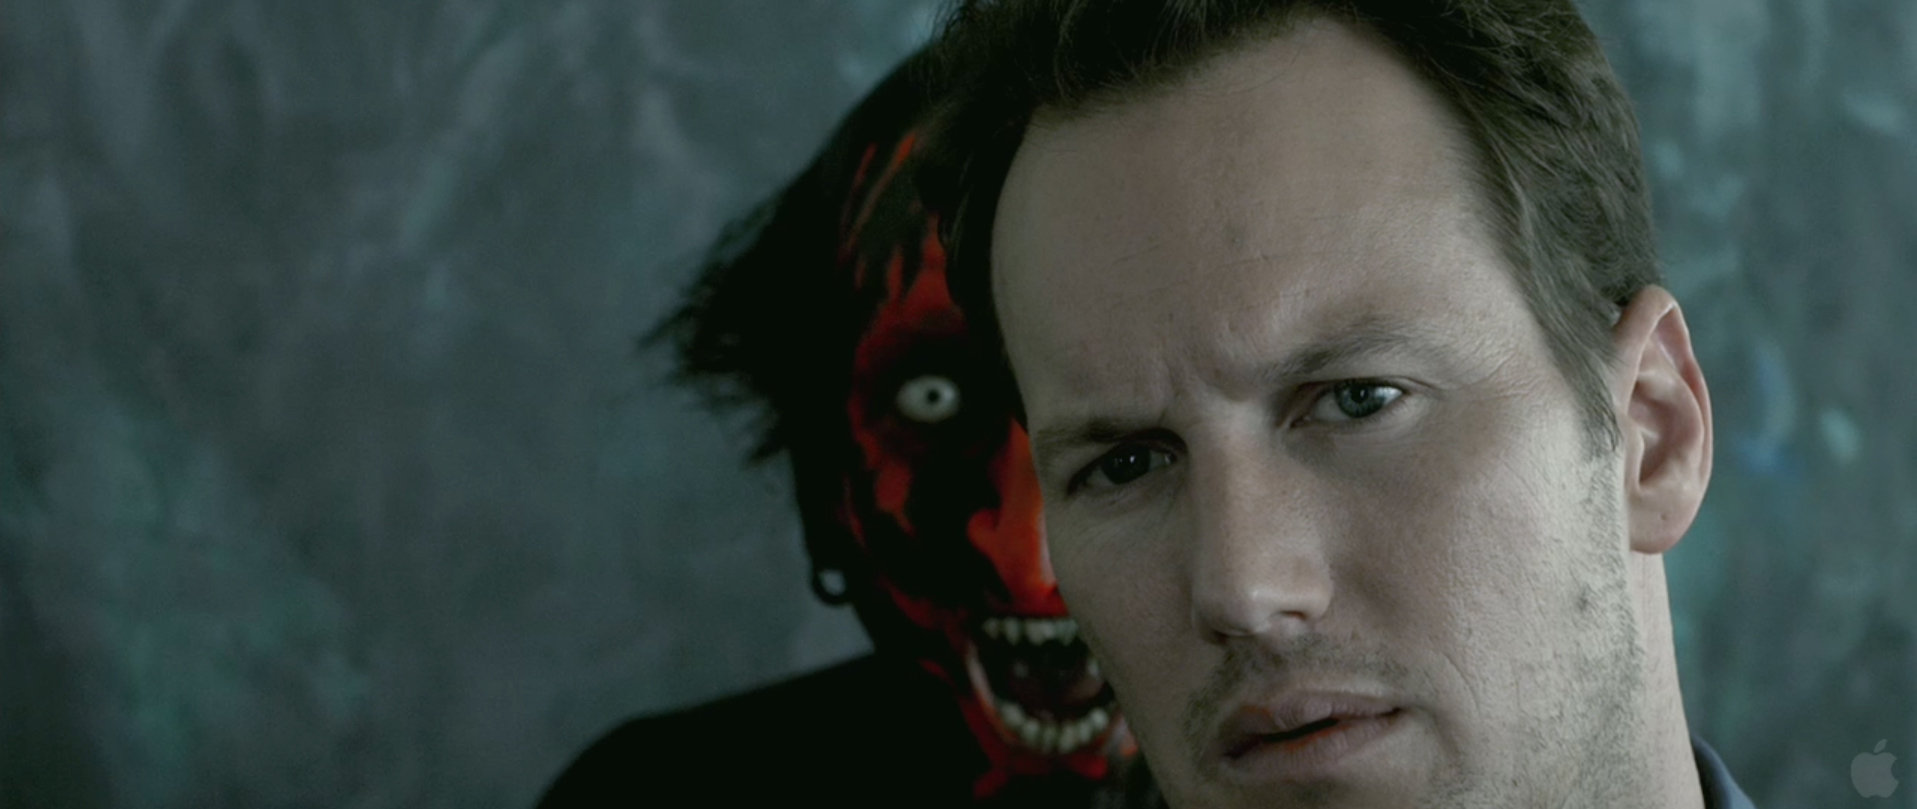 Insidious 3:' Release Date 2015 Revealed ; 'Fast and Furious 7 ...